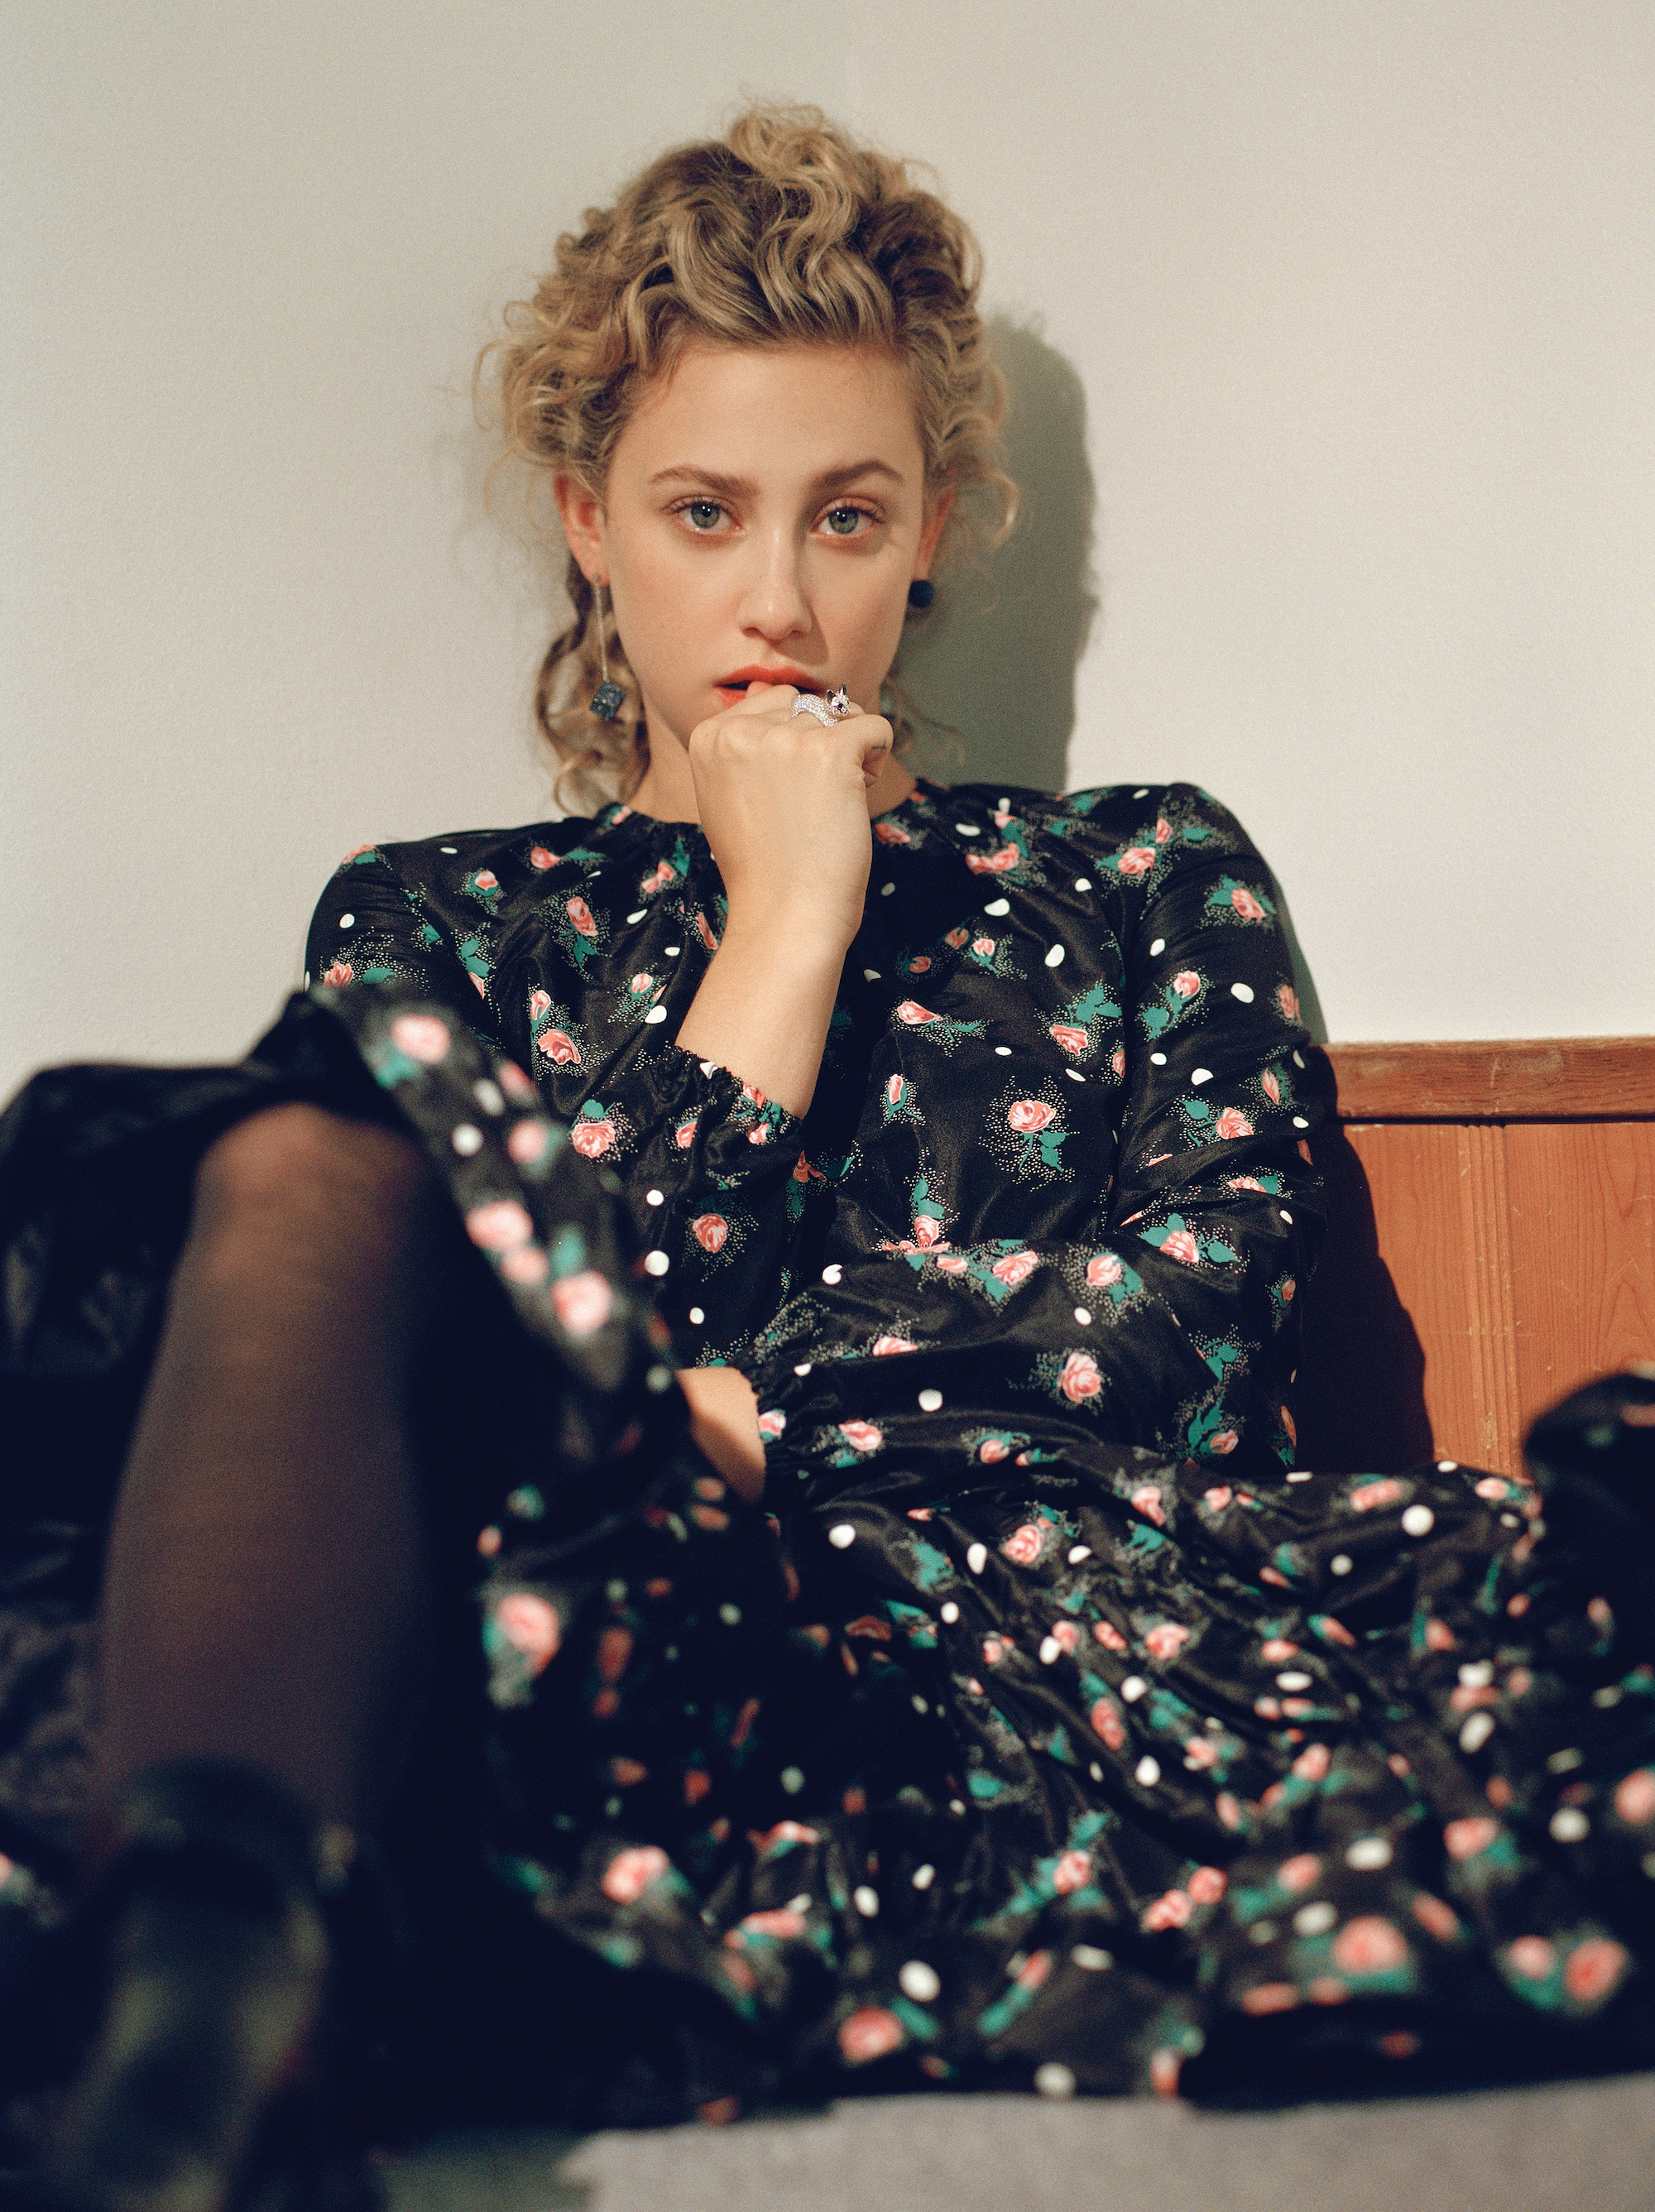 Wonderland Autumn 19 issue interview Lili Reinhart